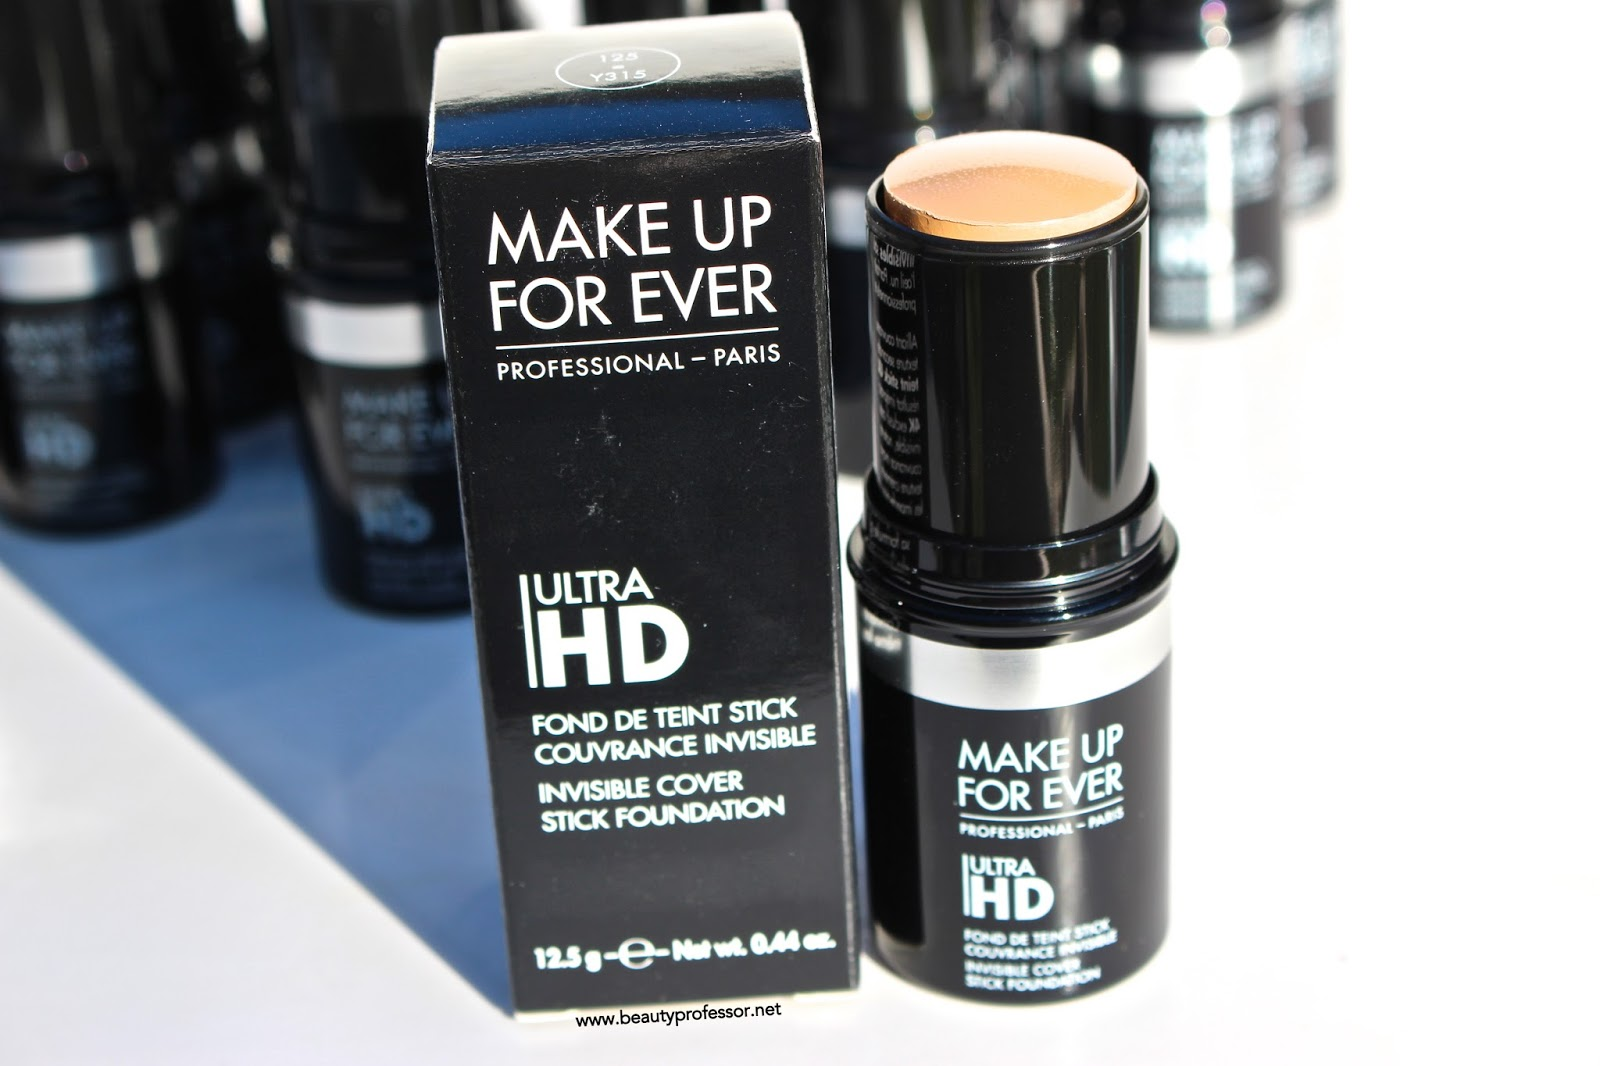 Make Up Forever Ultra Hd Foundation Stick Swatches